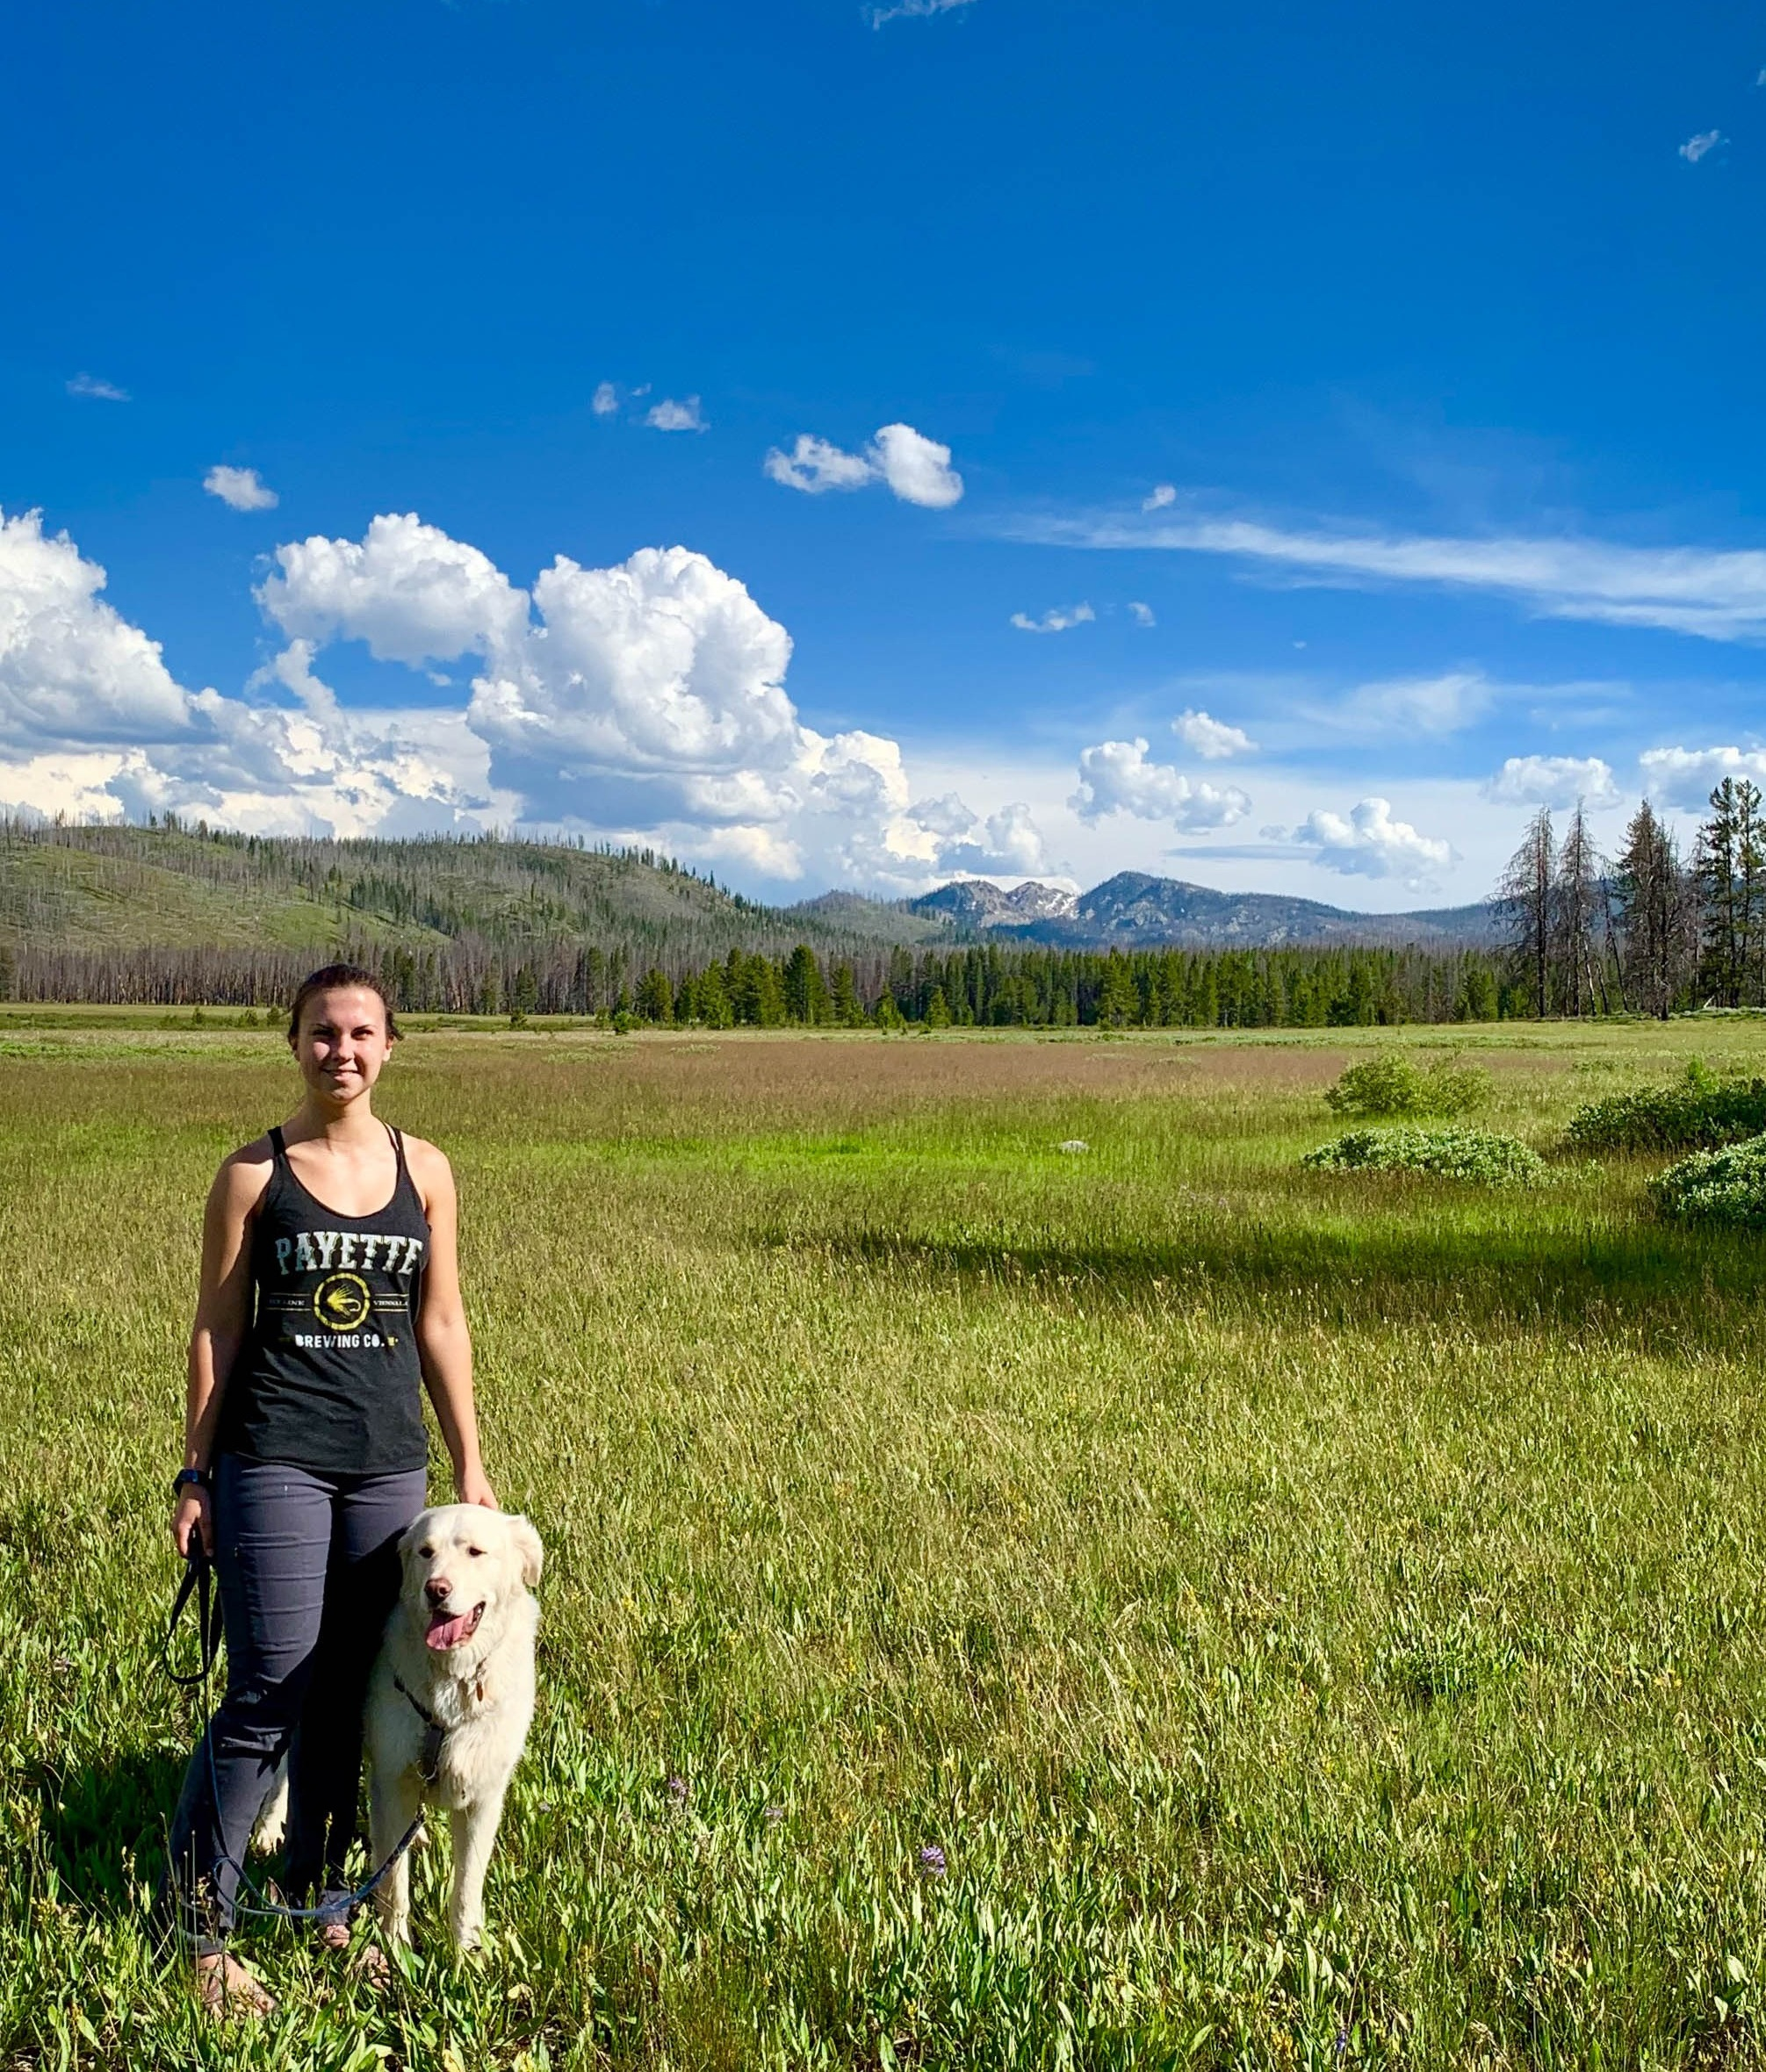 Cassidy, Head of QC at Payette, and her good boy Bert near Bear Valley, ID